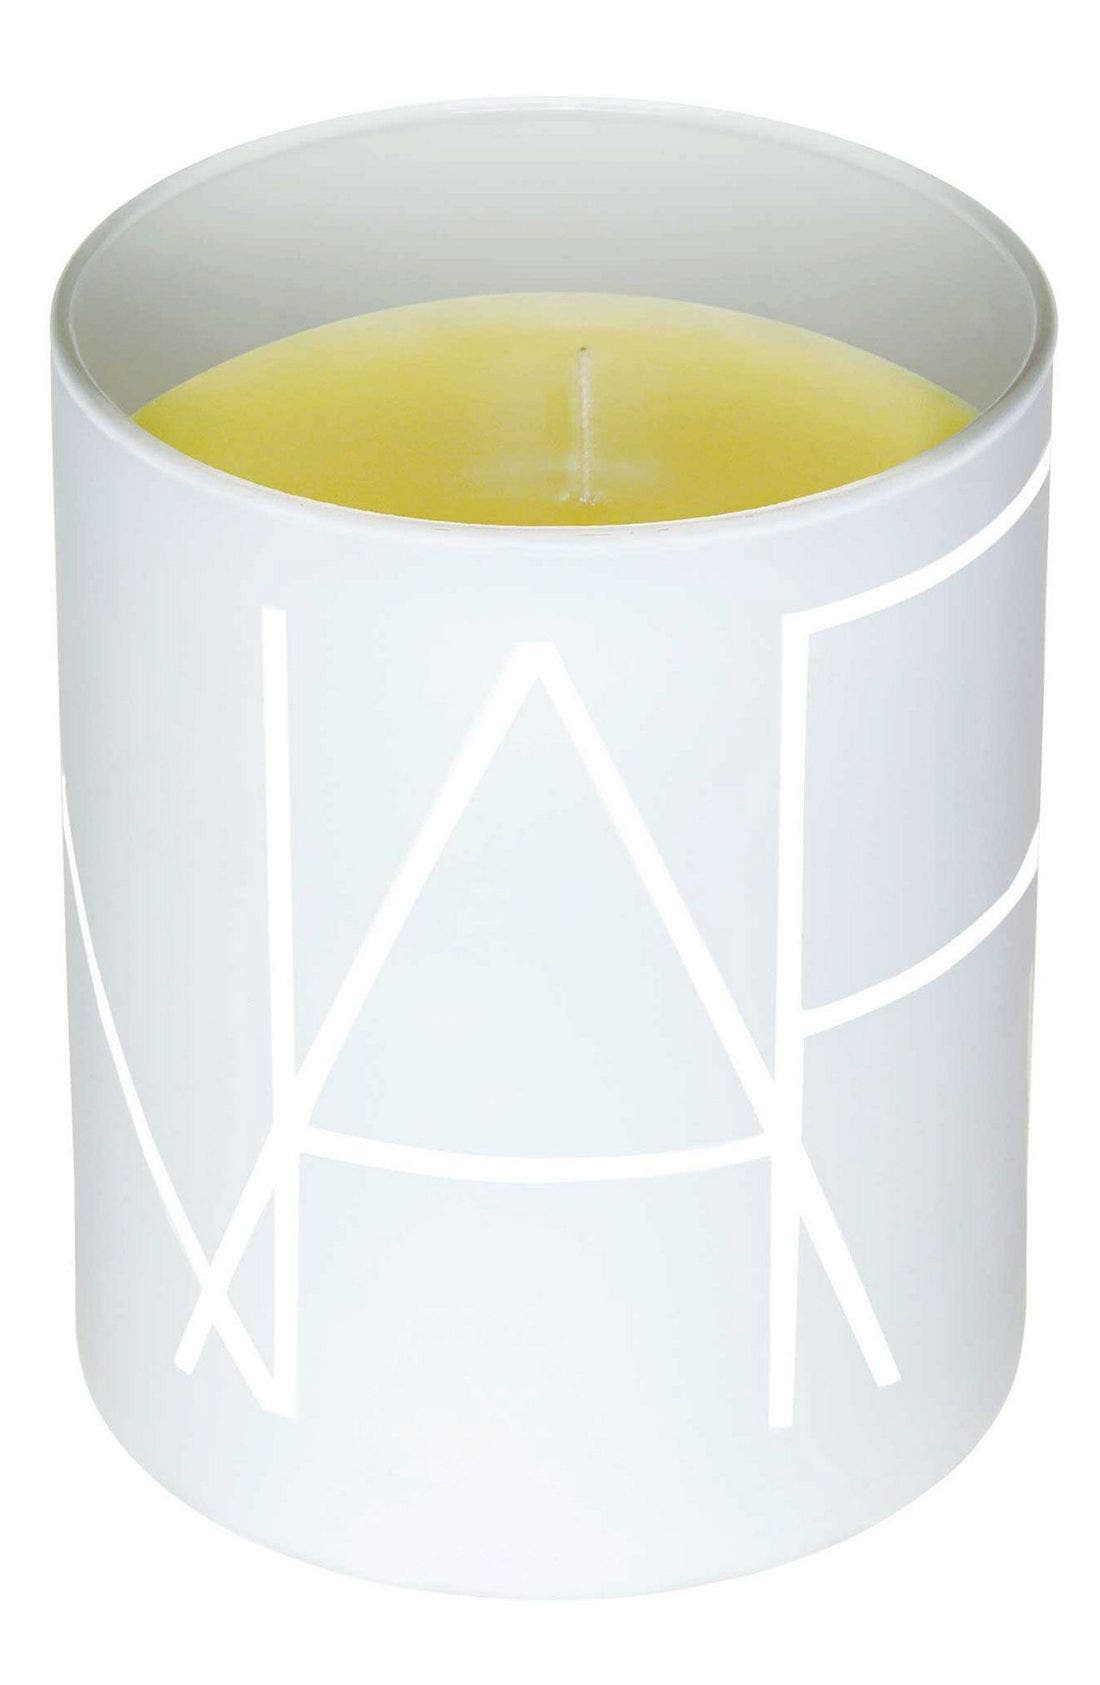 Alternate Image 1 Selected - NARS Oran Candle